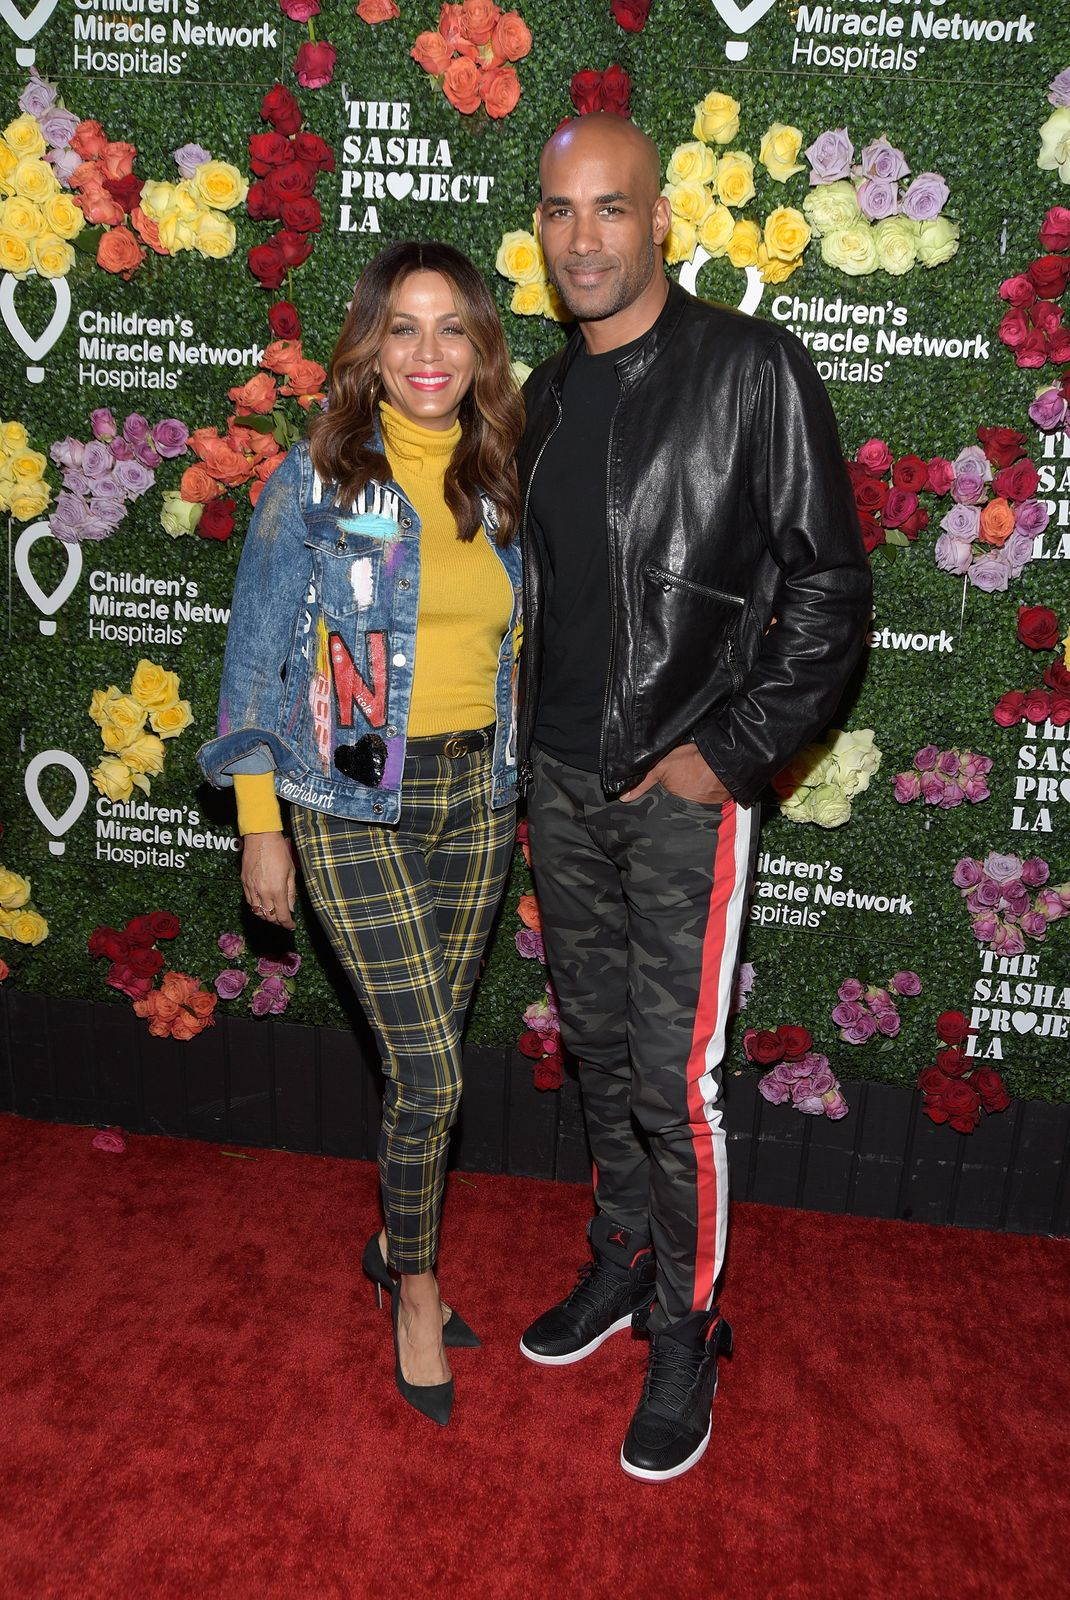 """Nicole Ari Parker and Boris Kodjoe attend """"Rock the Runway"""" presented by Children's Miracle Network Hospitals at Avalon on October 13, 2018. 